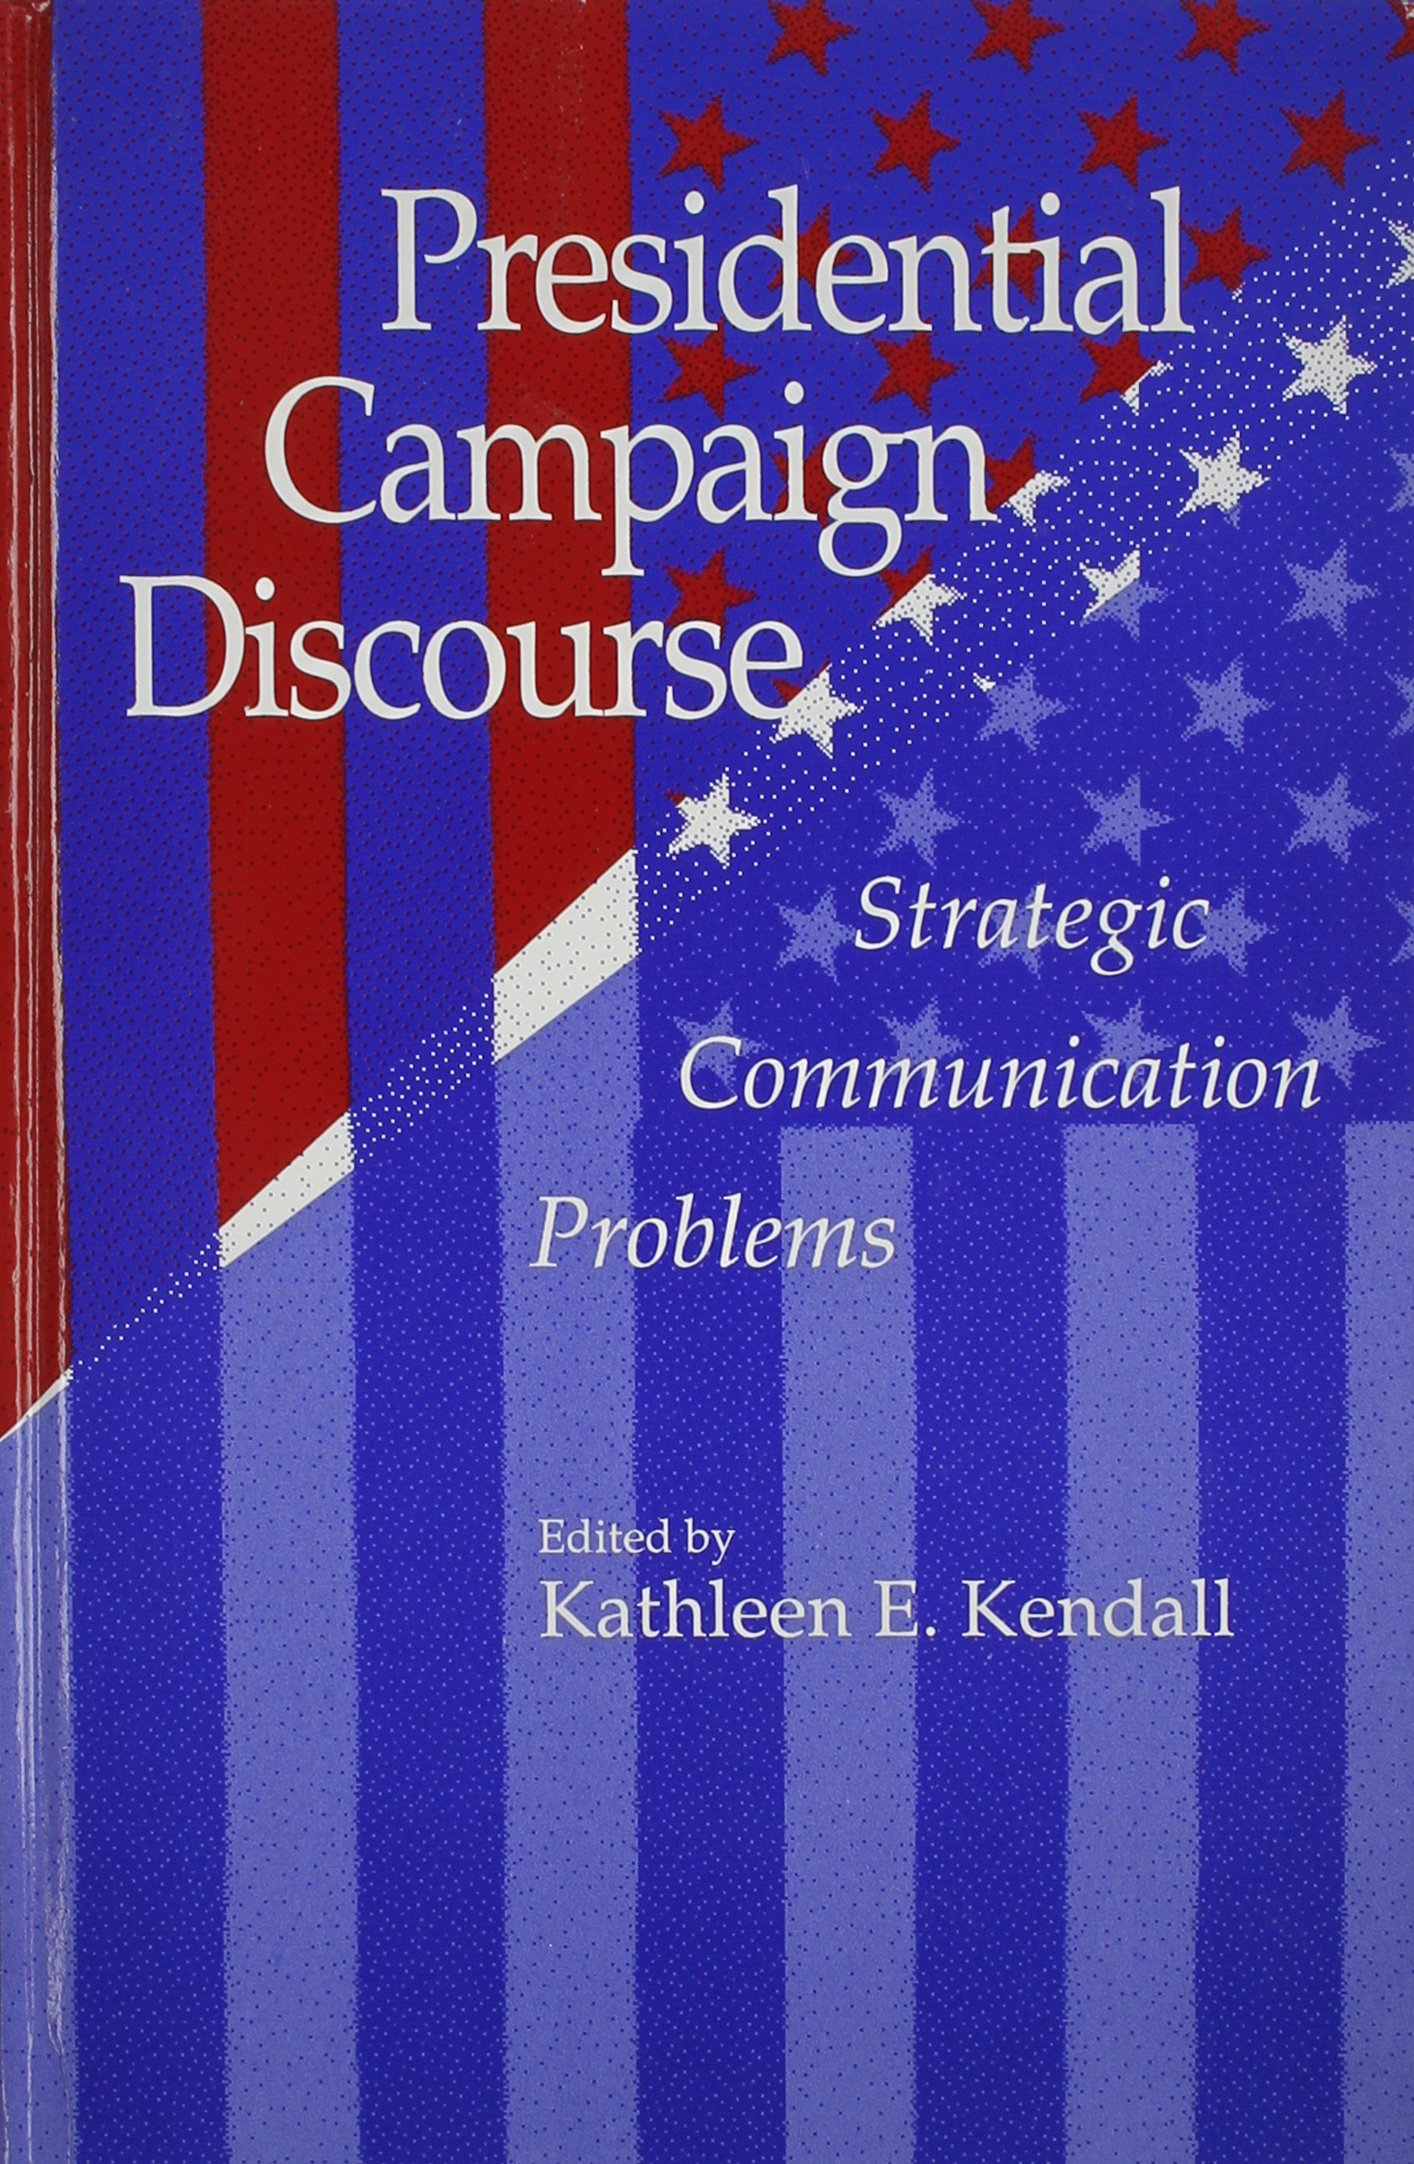 Image for Presidential Campaign Discourse: Strategic Communication Problems (SUNY series, Human Communication Processes)